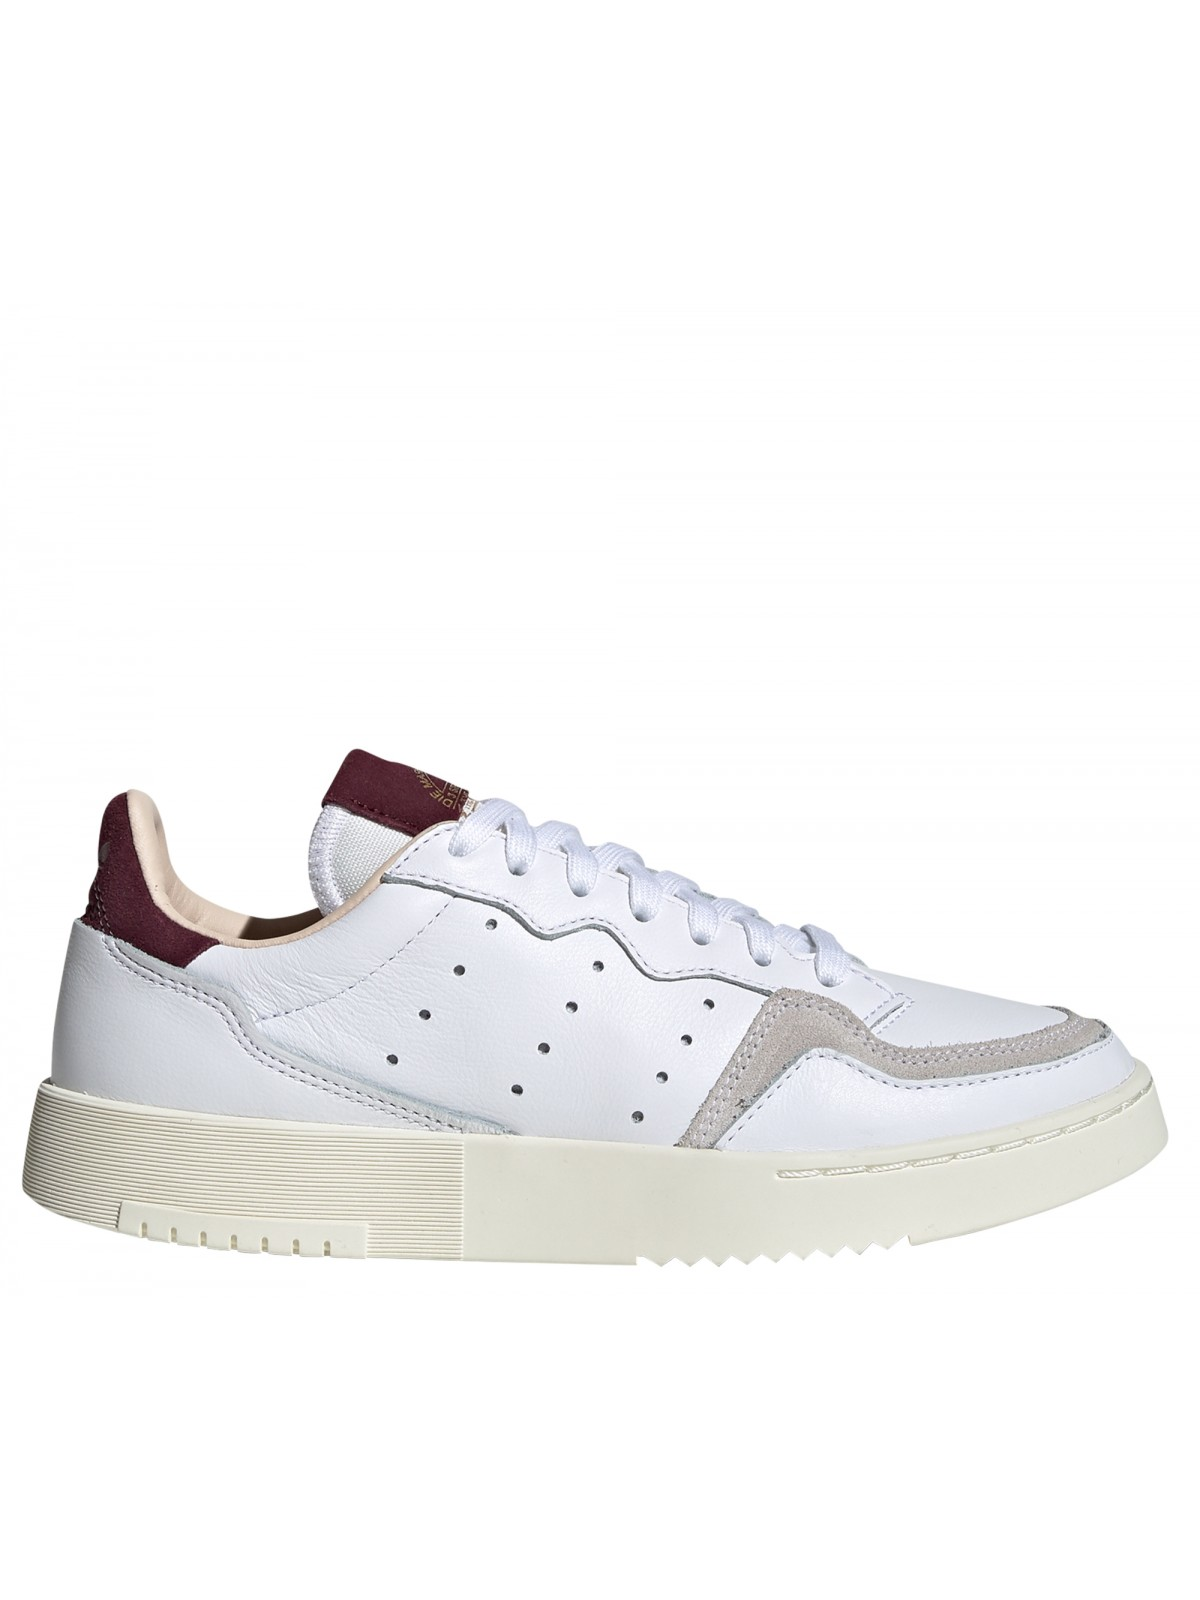 ADIDAS Supercourt blanc / bordeaux